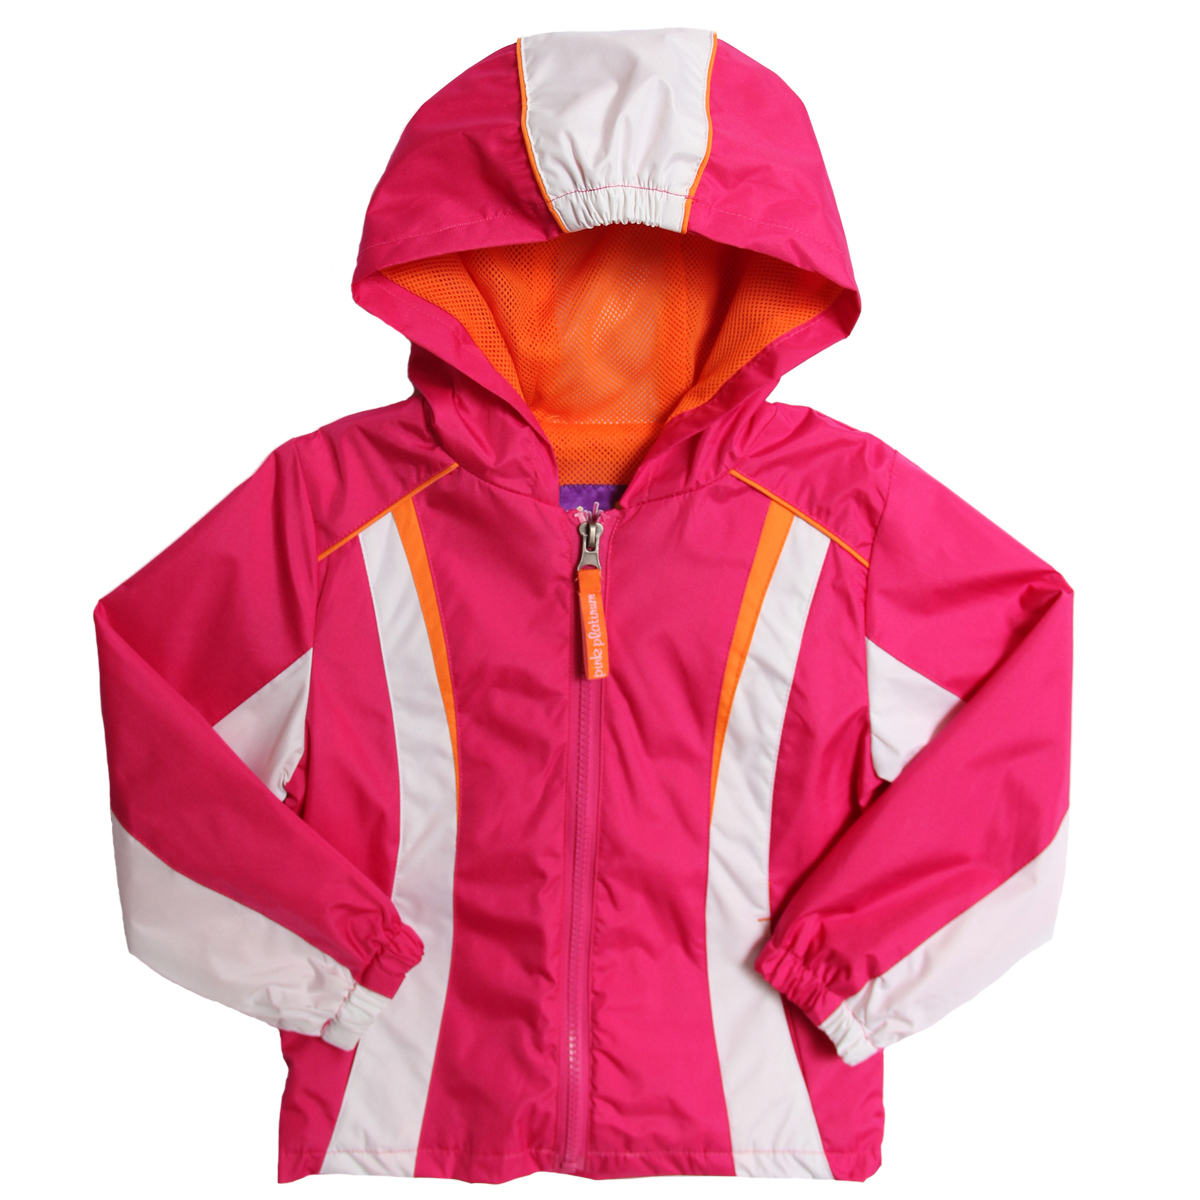 Pink Platinum Girls (4-6x) hooded all weather mesh lined jacket - fuchsia at Sears.com